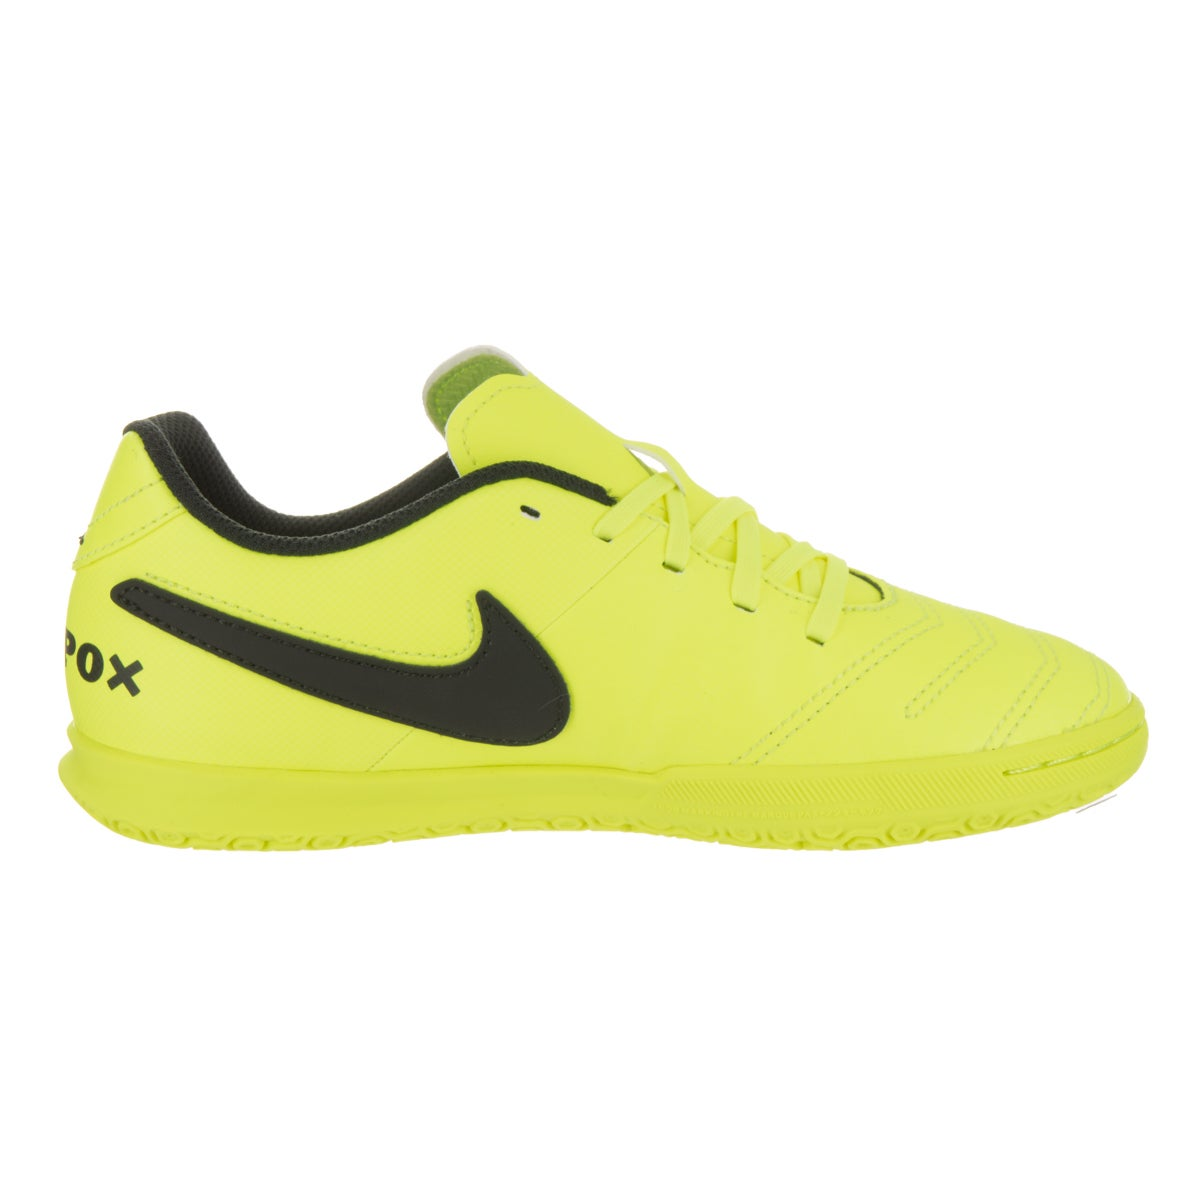 af1475d20d3 Shop Nike Kids Jr Tiempox Rio III IC Indoor Soccer Shoe - Free Shipping On  Orders Over  45 - Overstock - 15858501